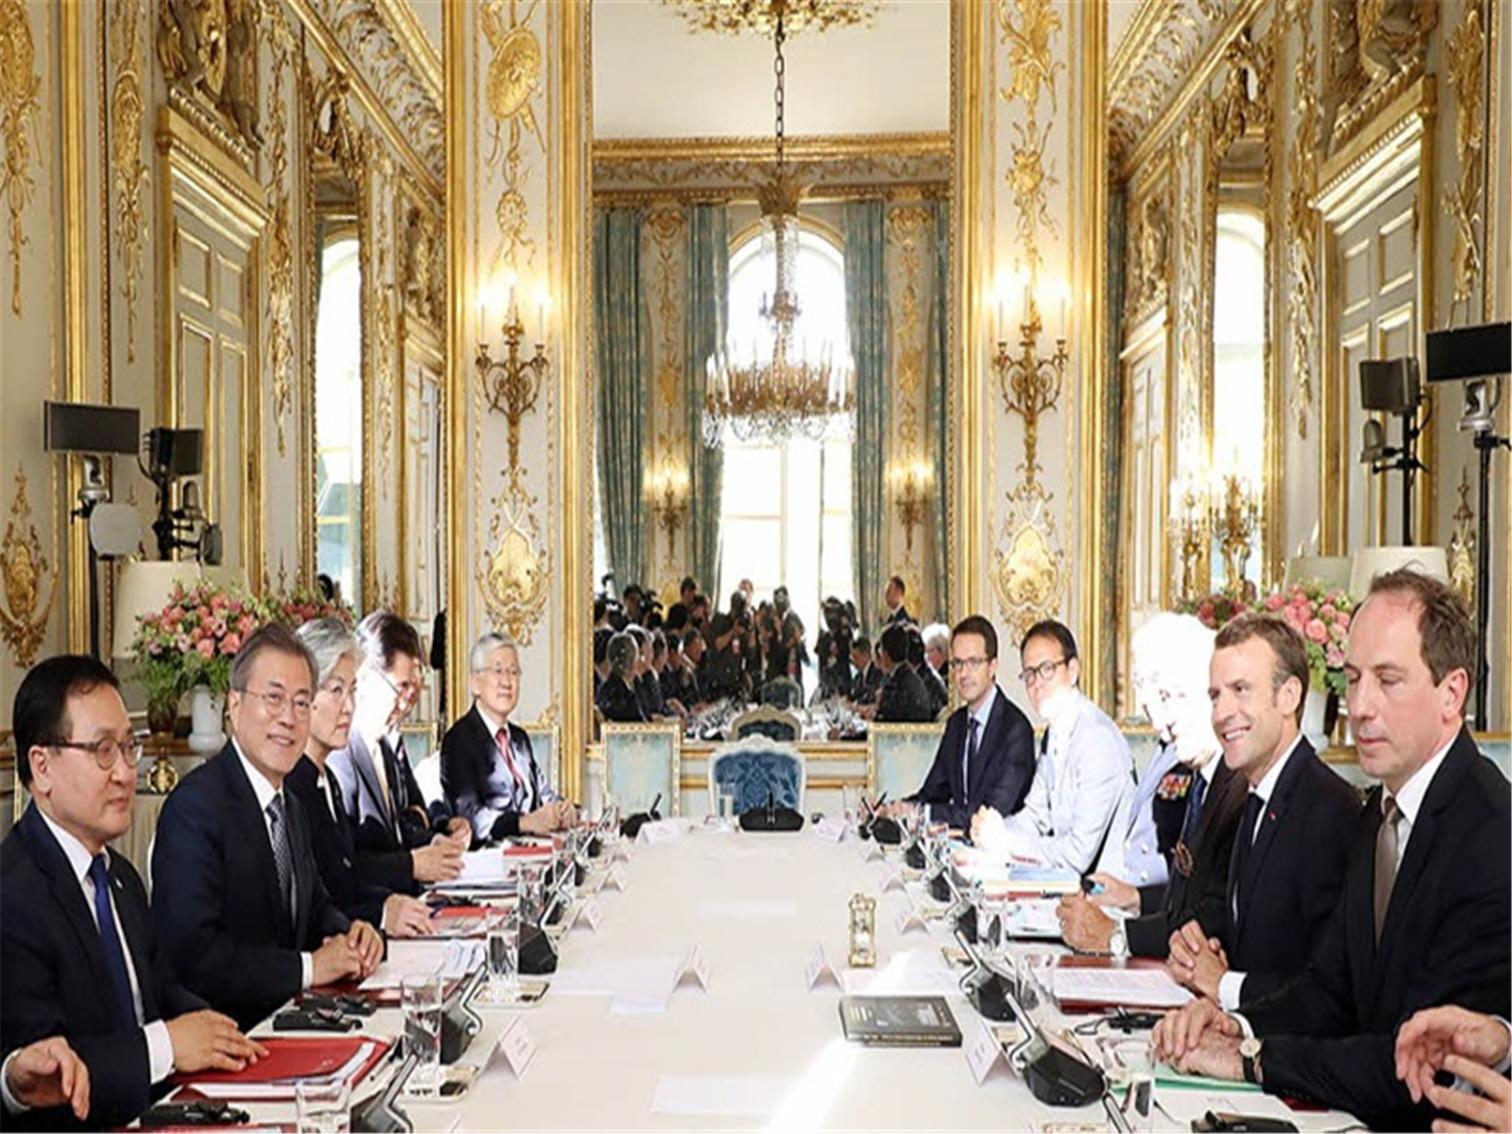 The President and French President Emmanuel Macron Hold Summit